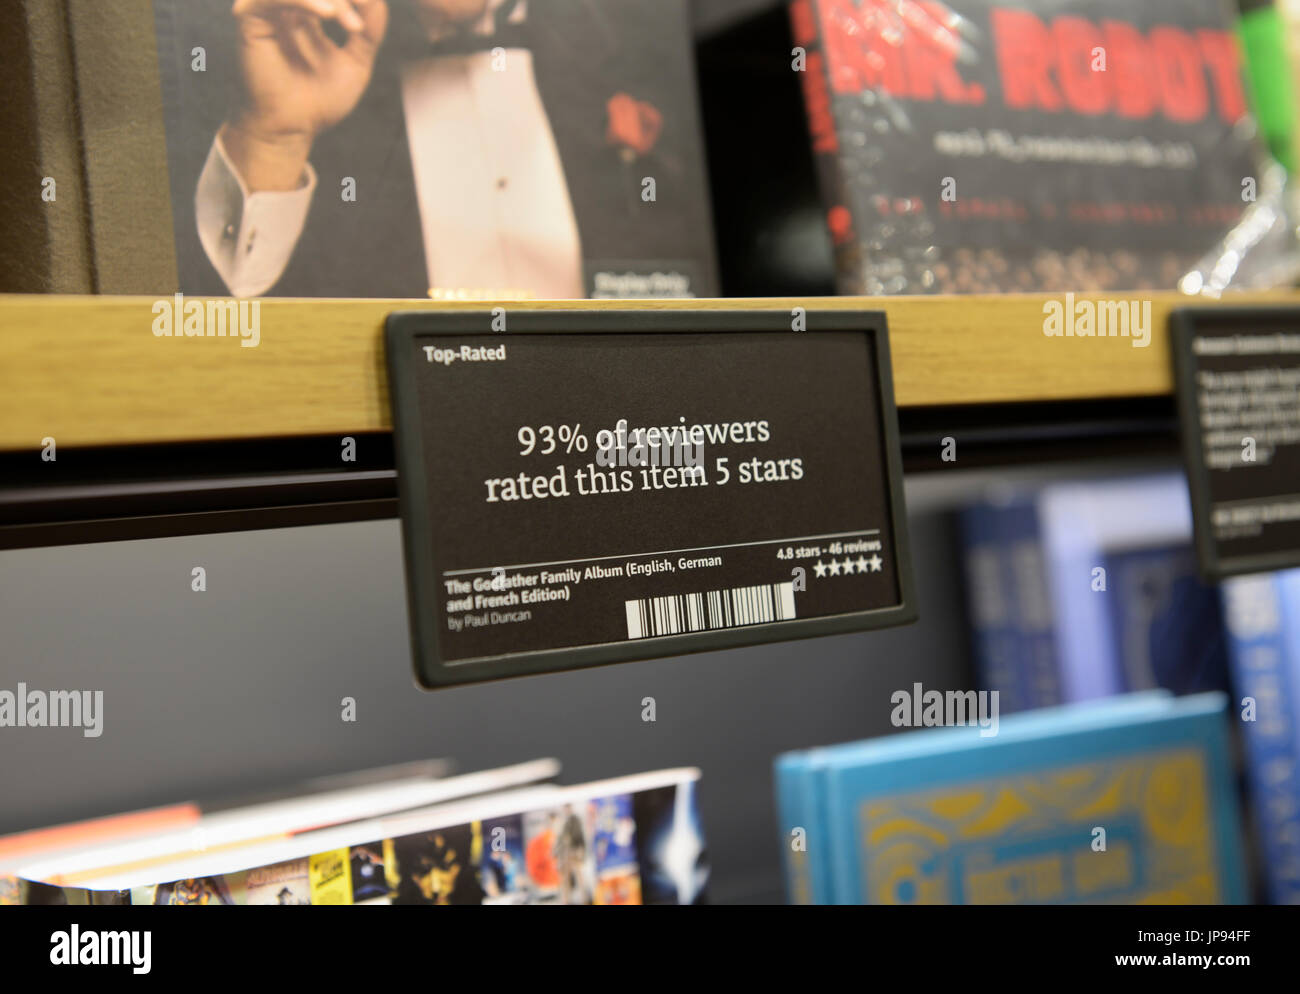 Books on shelves at an Amazon Books store with customer reviews and ratings , NJ - Stock Image